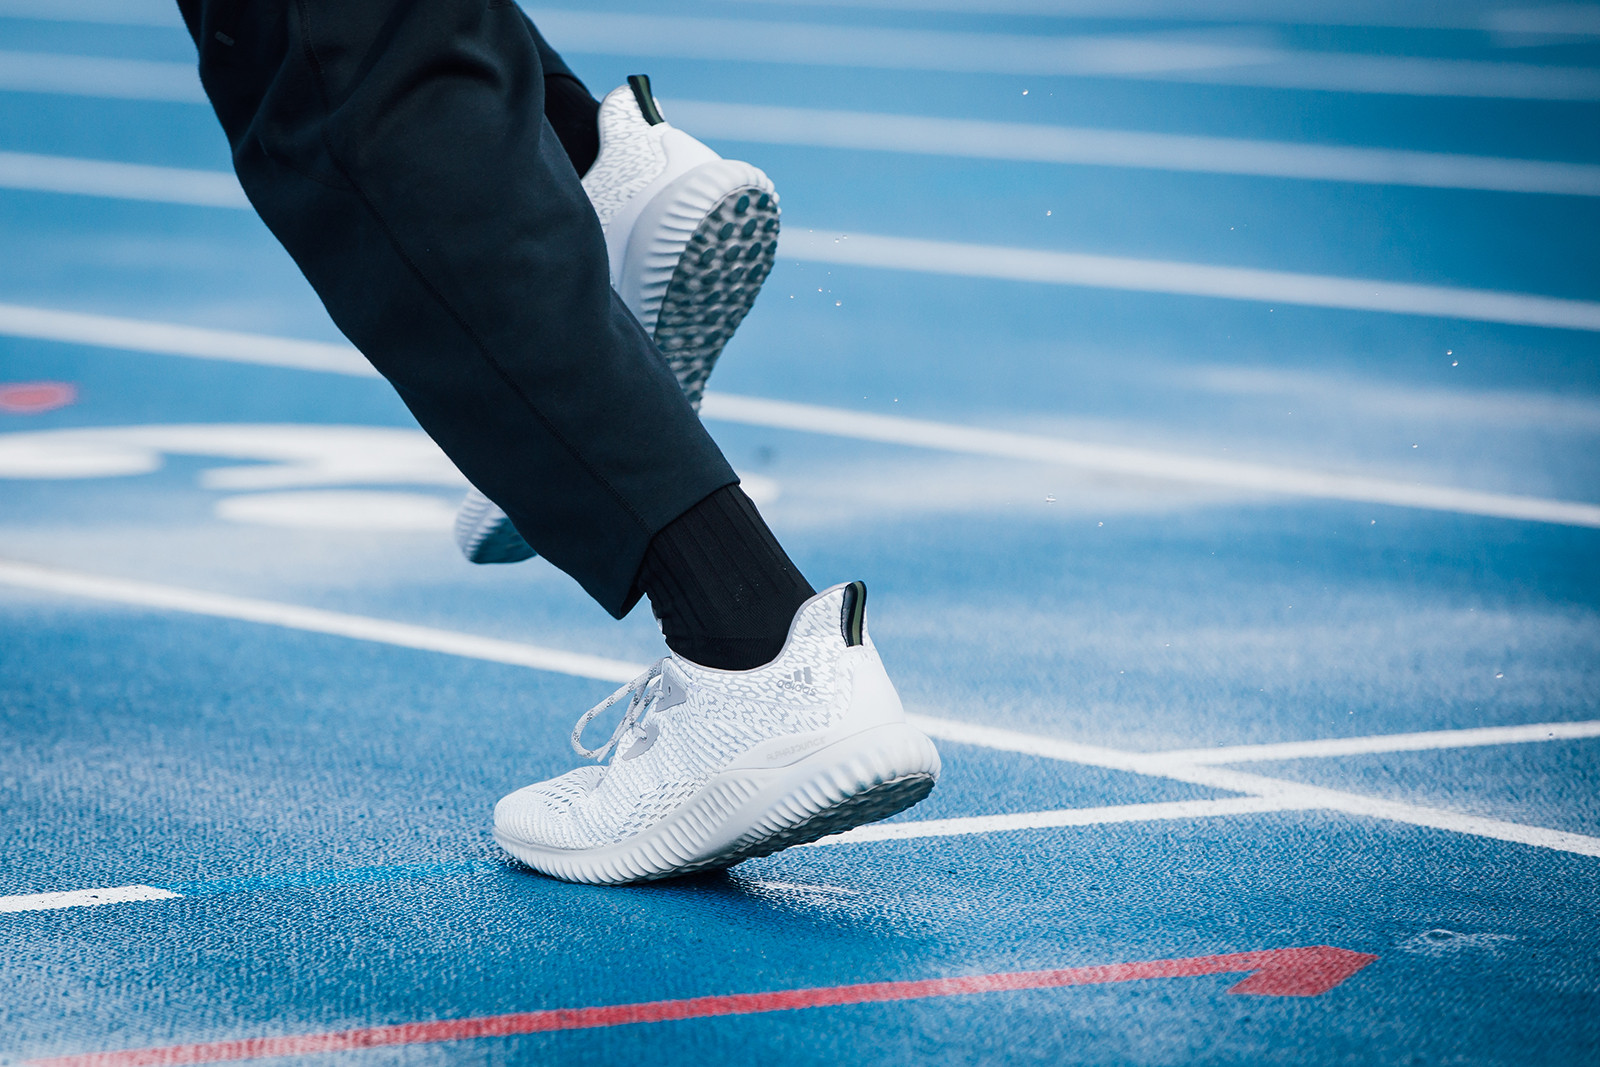 promo code 3a0fa db96f adidas alphabounce ams Sneaker Performance Review  HYPEBEAST